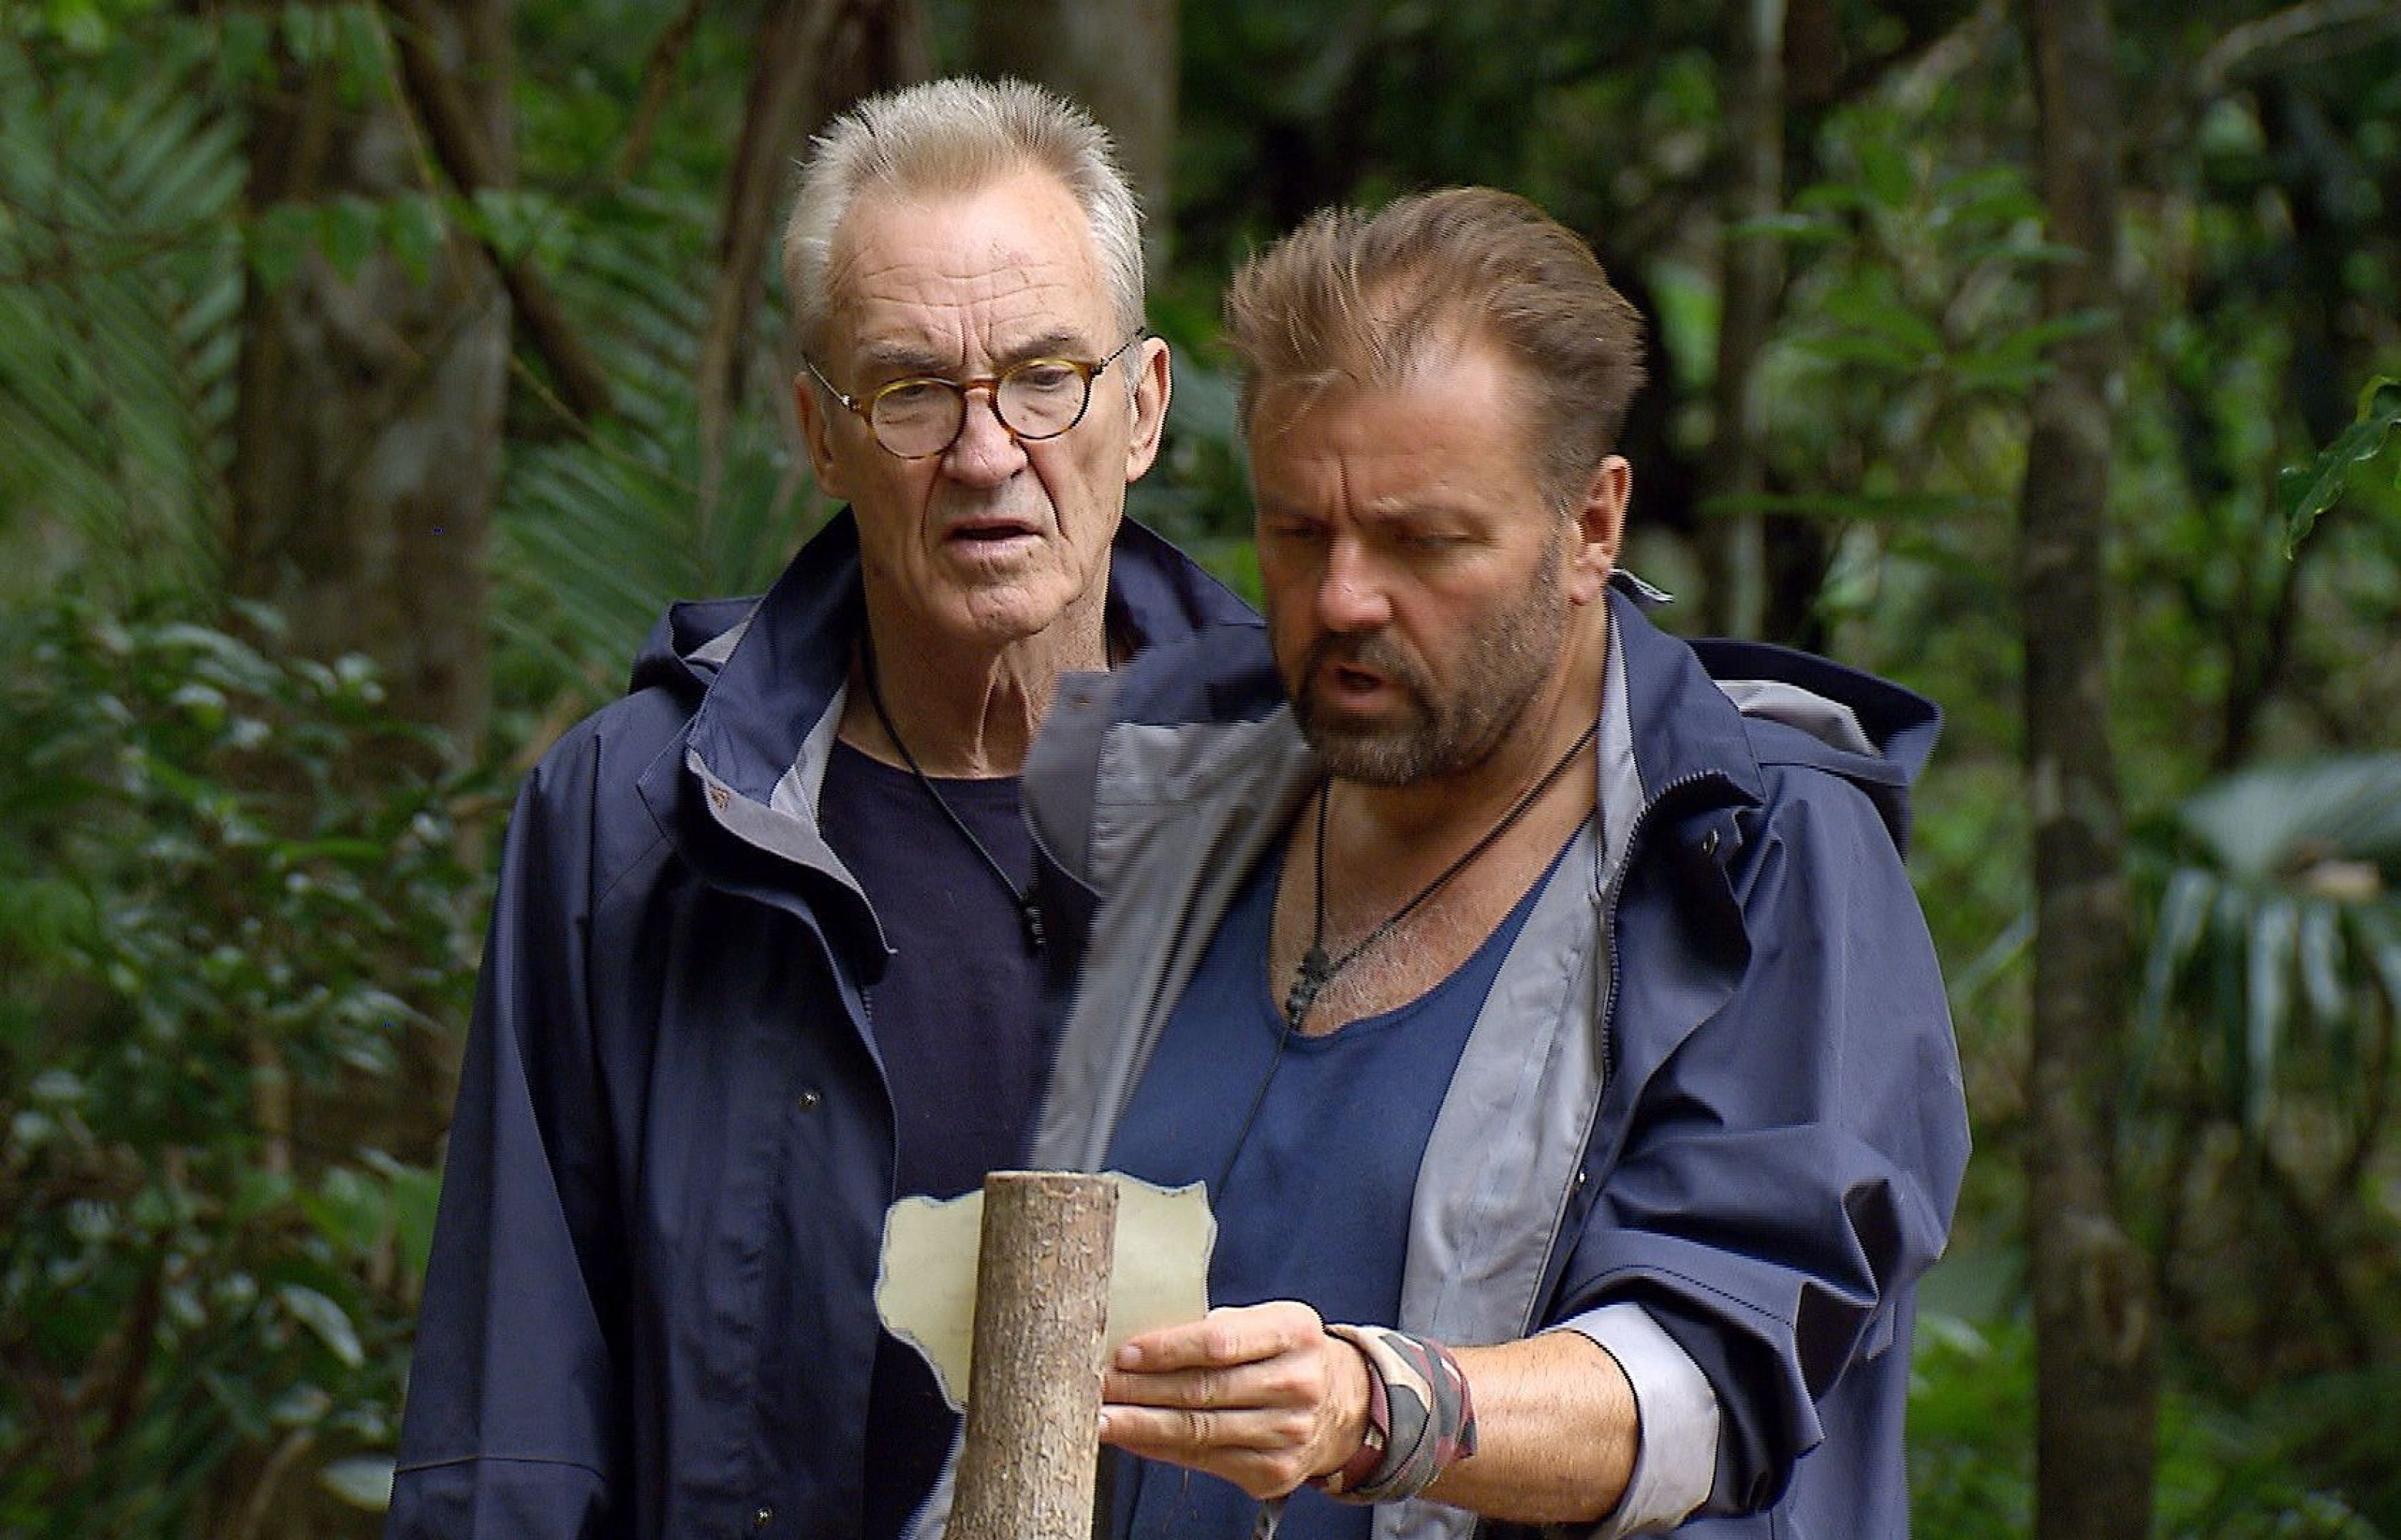 I'm A Celebrity's Martin Roberts Compares Larry Lamb To Schoolyard